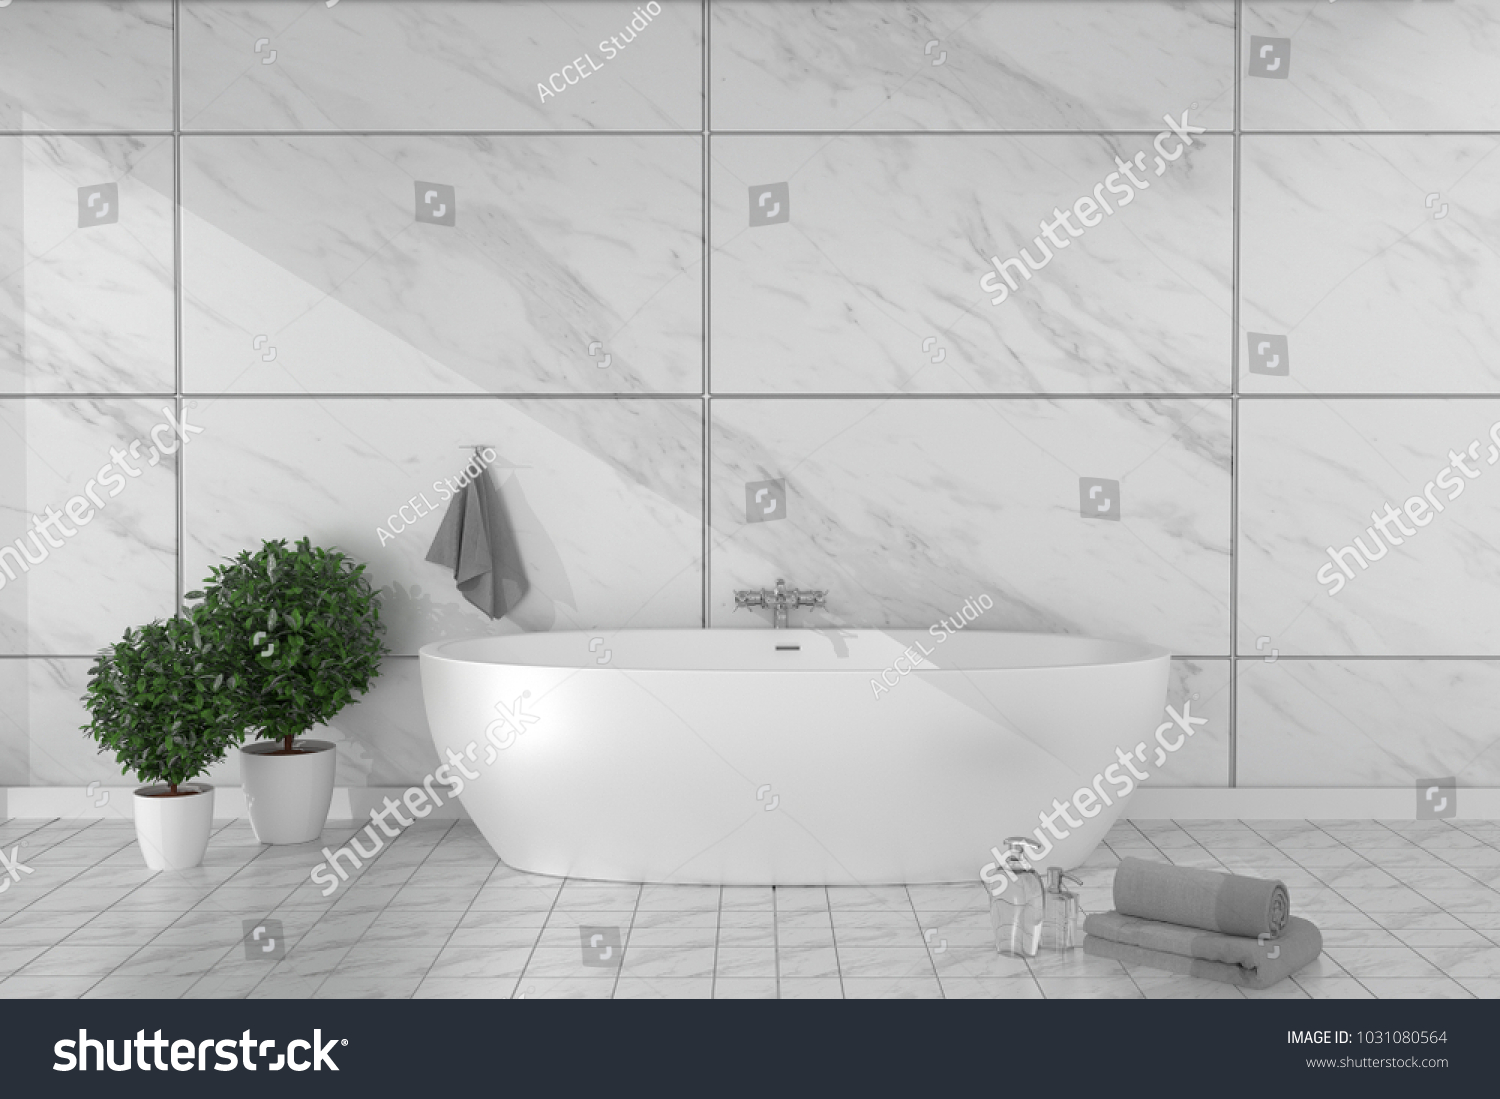 Bathroom Interior Bathtub Ceramic Tile Floor Stock Illustration ...